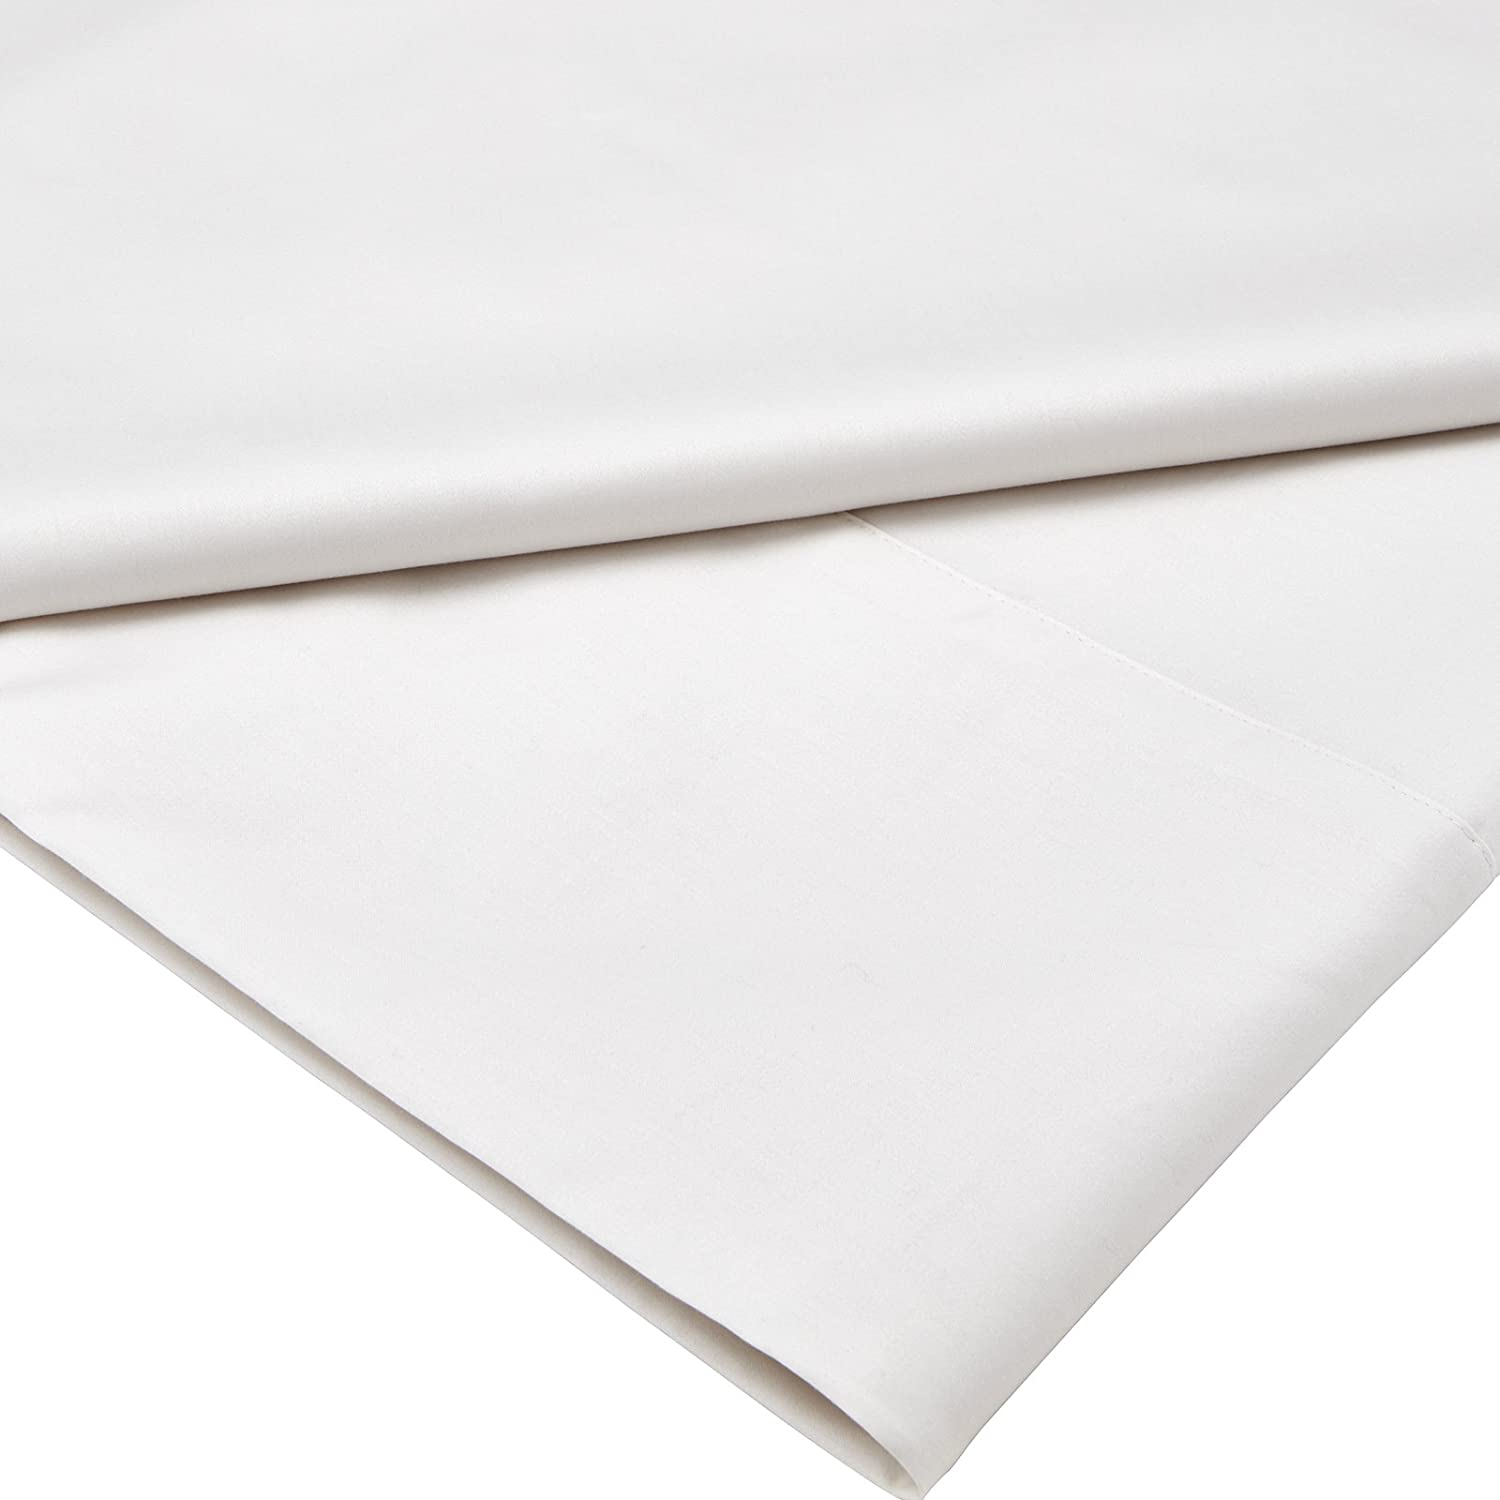 Silver Royal Sheridan Luxuriously Comfortable 500 Thread Count Cotton Sateen Flat Sheet Double Size